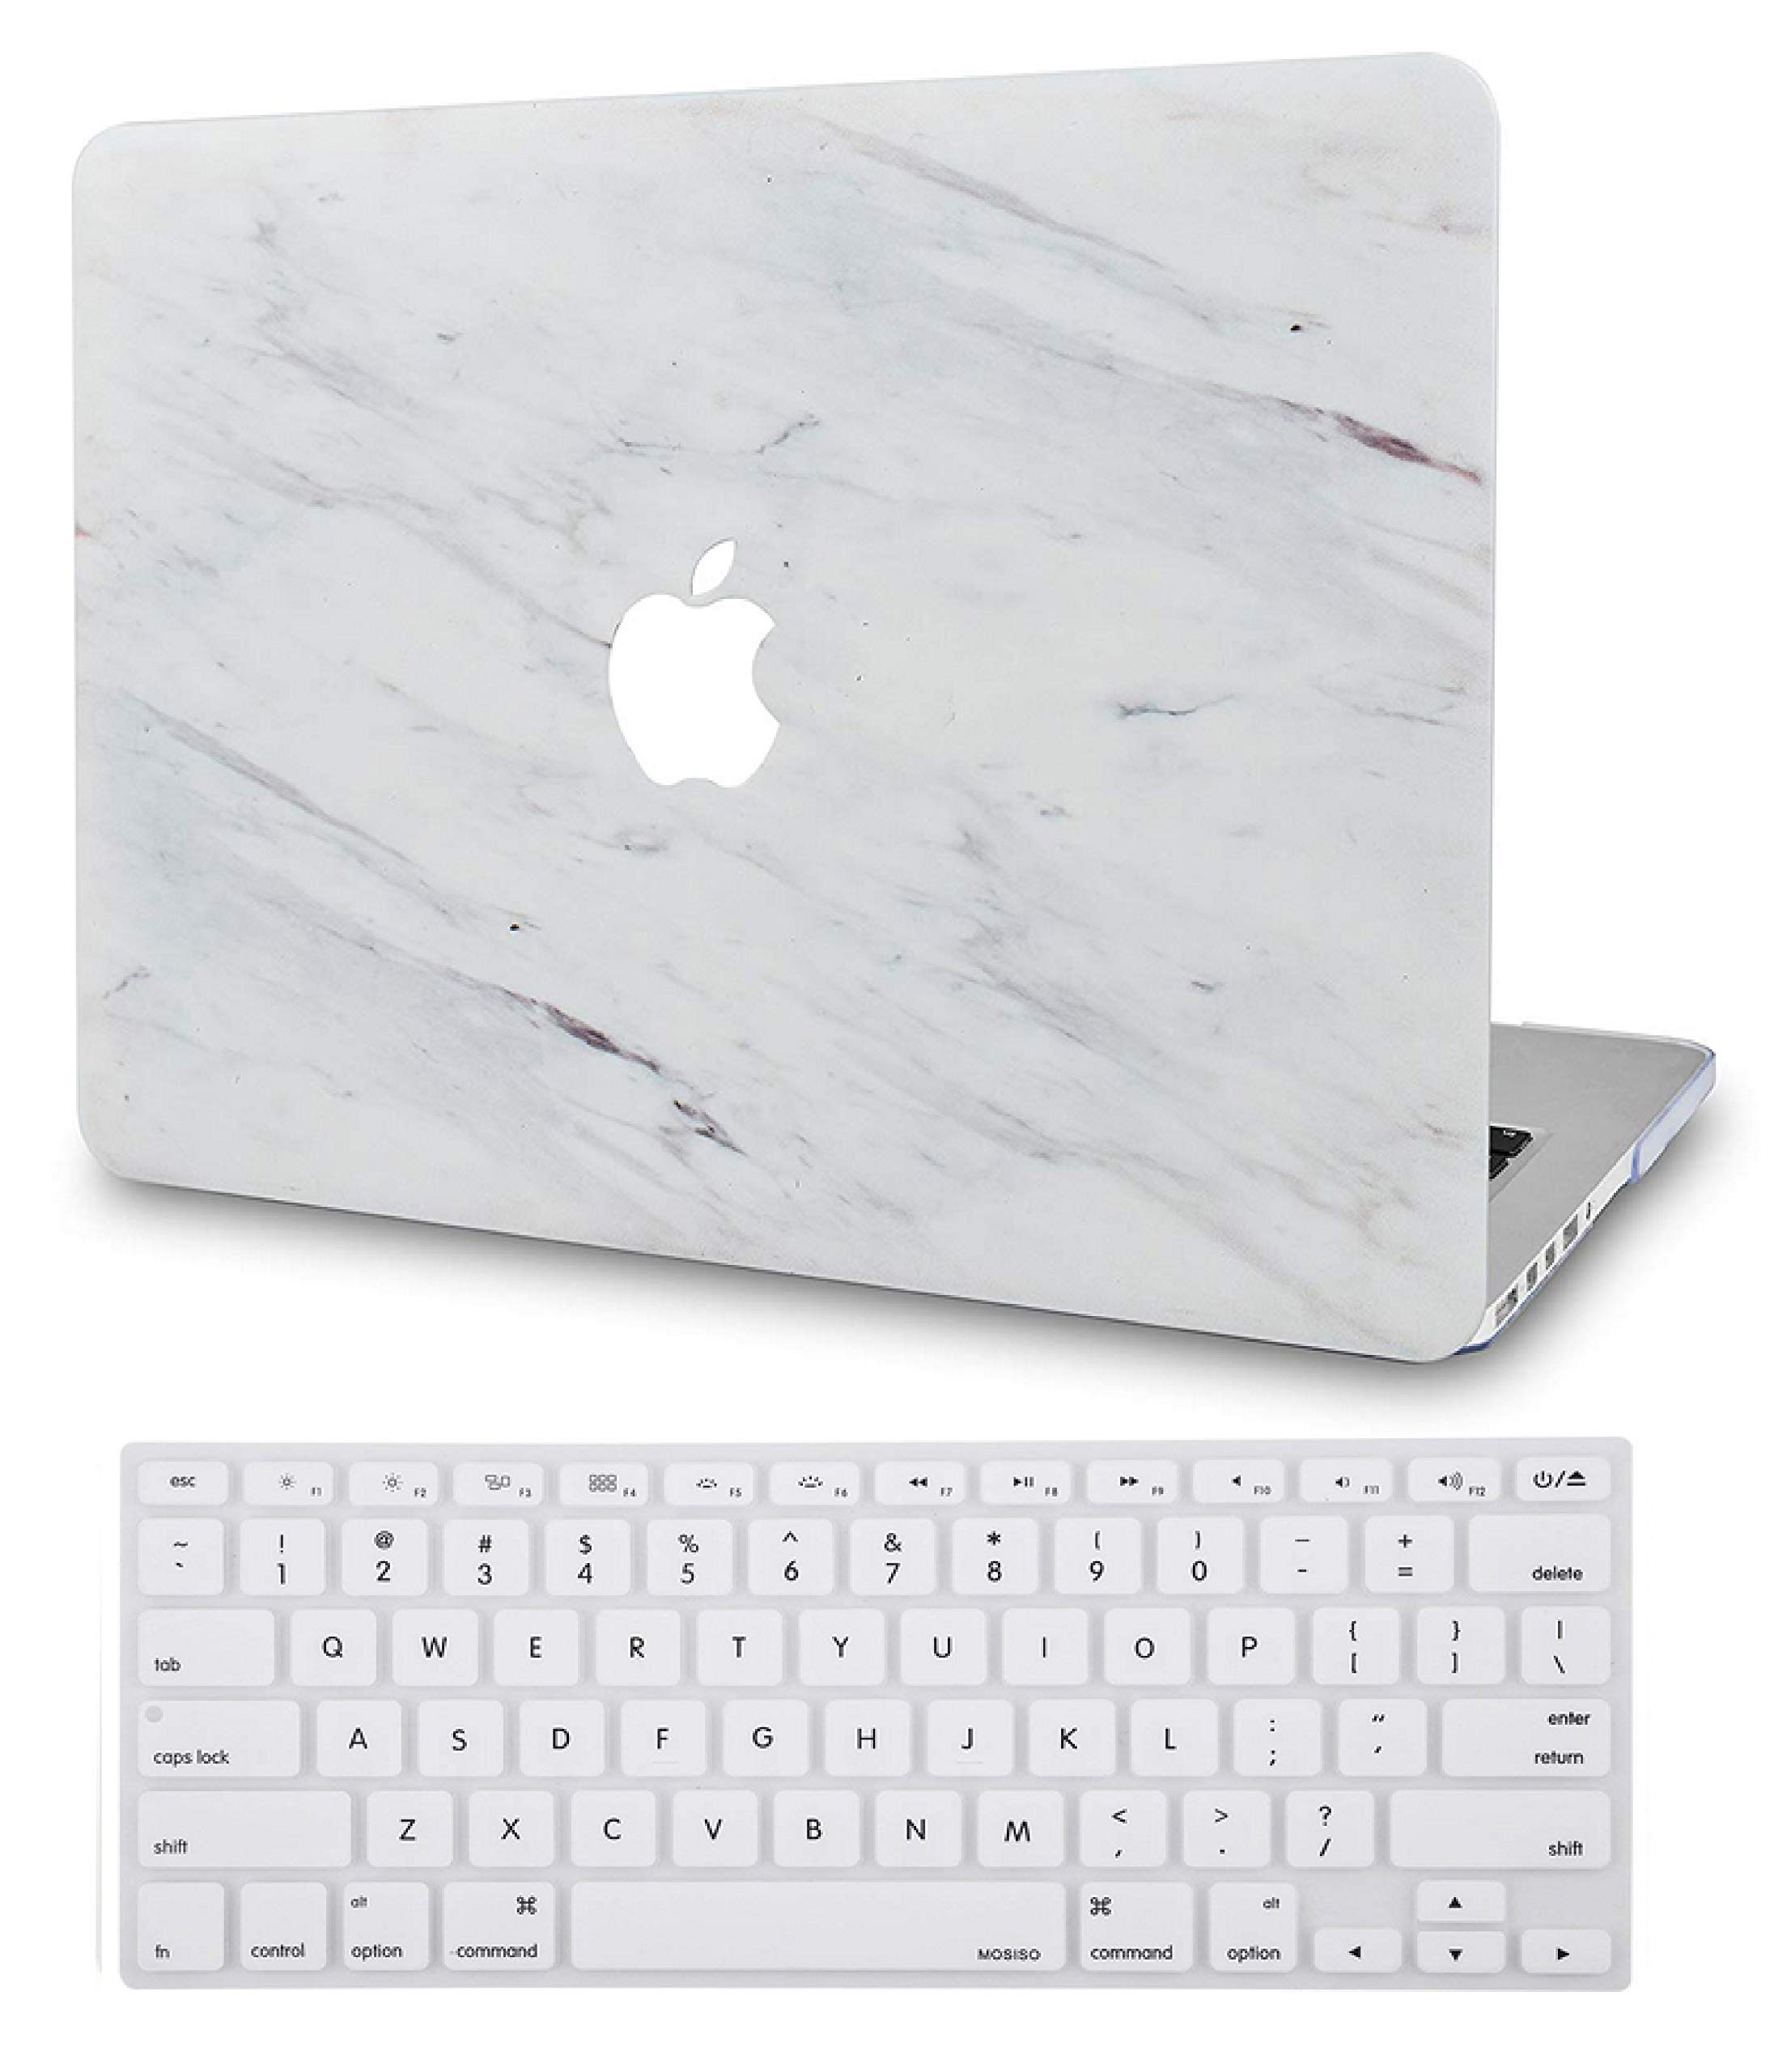 LuvCase/Laptop/Case/for/MacBook/Pro 13 2020//19//18//17//16 Release with//Without Touch Bar A2159//A1989//A1706//A1708 Rubberized/Plastic/Hard/Shell Cover Blue White Marble 1